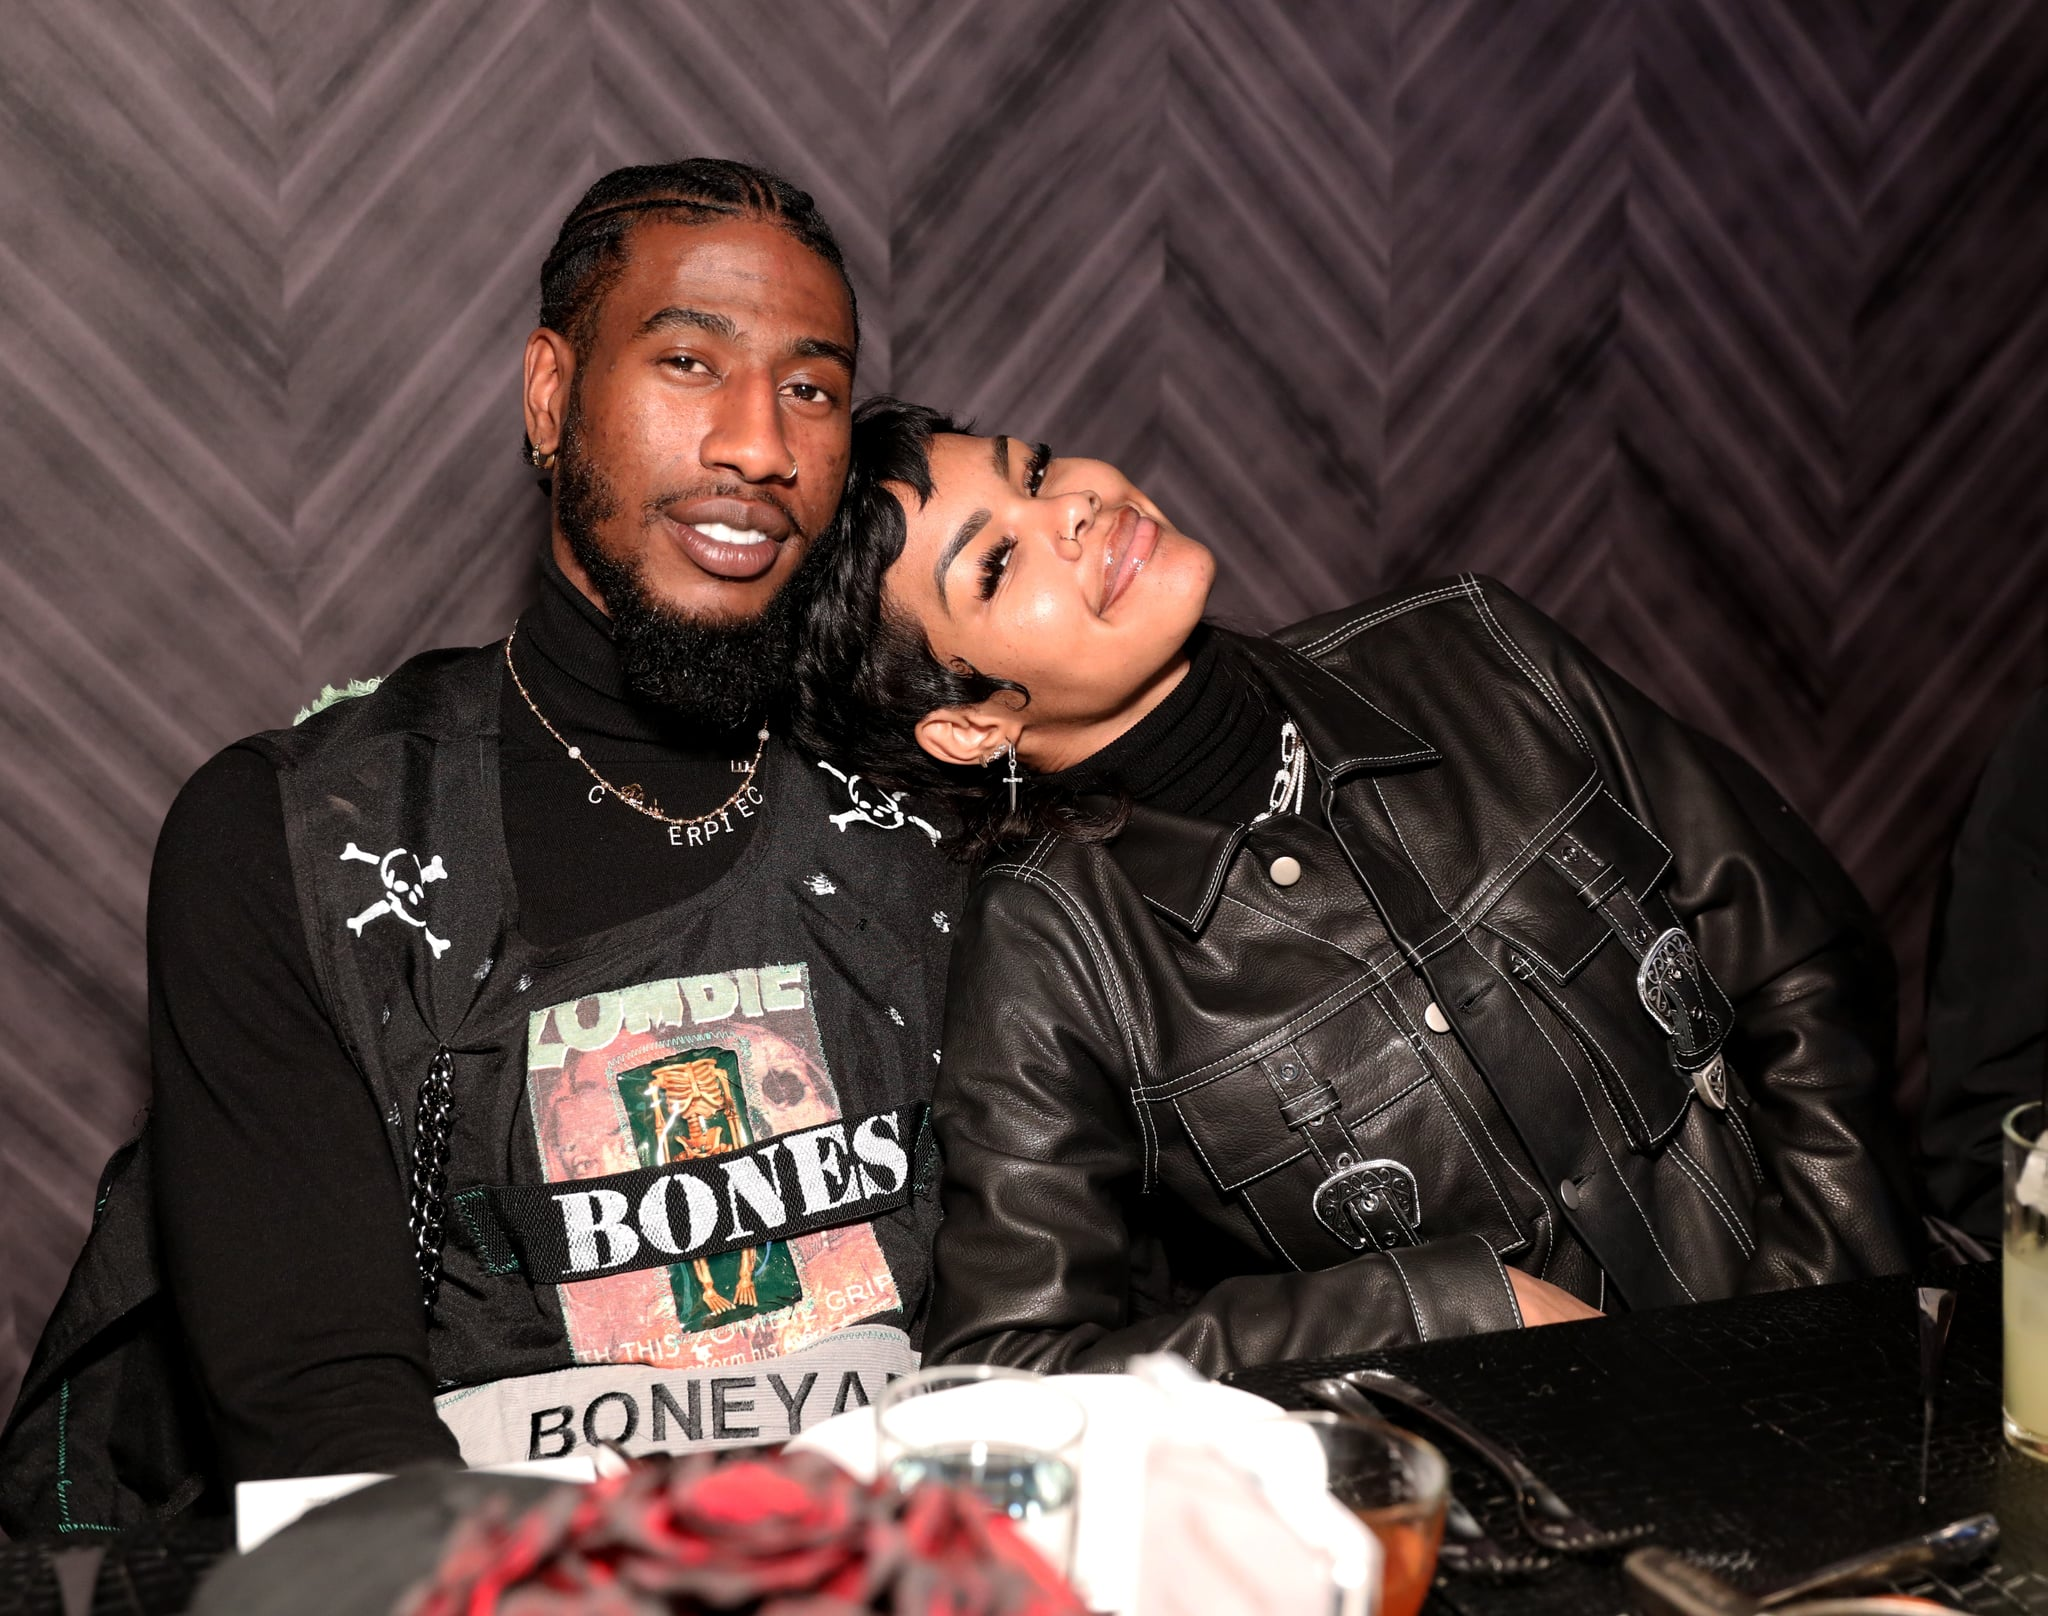 CHICAGO, ILLINOIS - FEBRUARY 14: Iman Shumpert and Teyana Taylor attend The Compound and Luxury Watchmaker Roger Dubuis Hosts NBA All-Star Dinner at STK Chicago on February 14, 2020 in Chicago, Illinois. (Photo by Robin Marchant/Getty Images for Roger Dubuis)